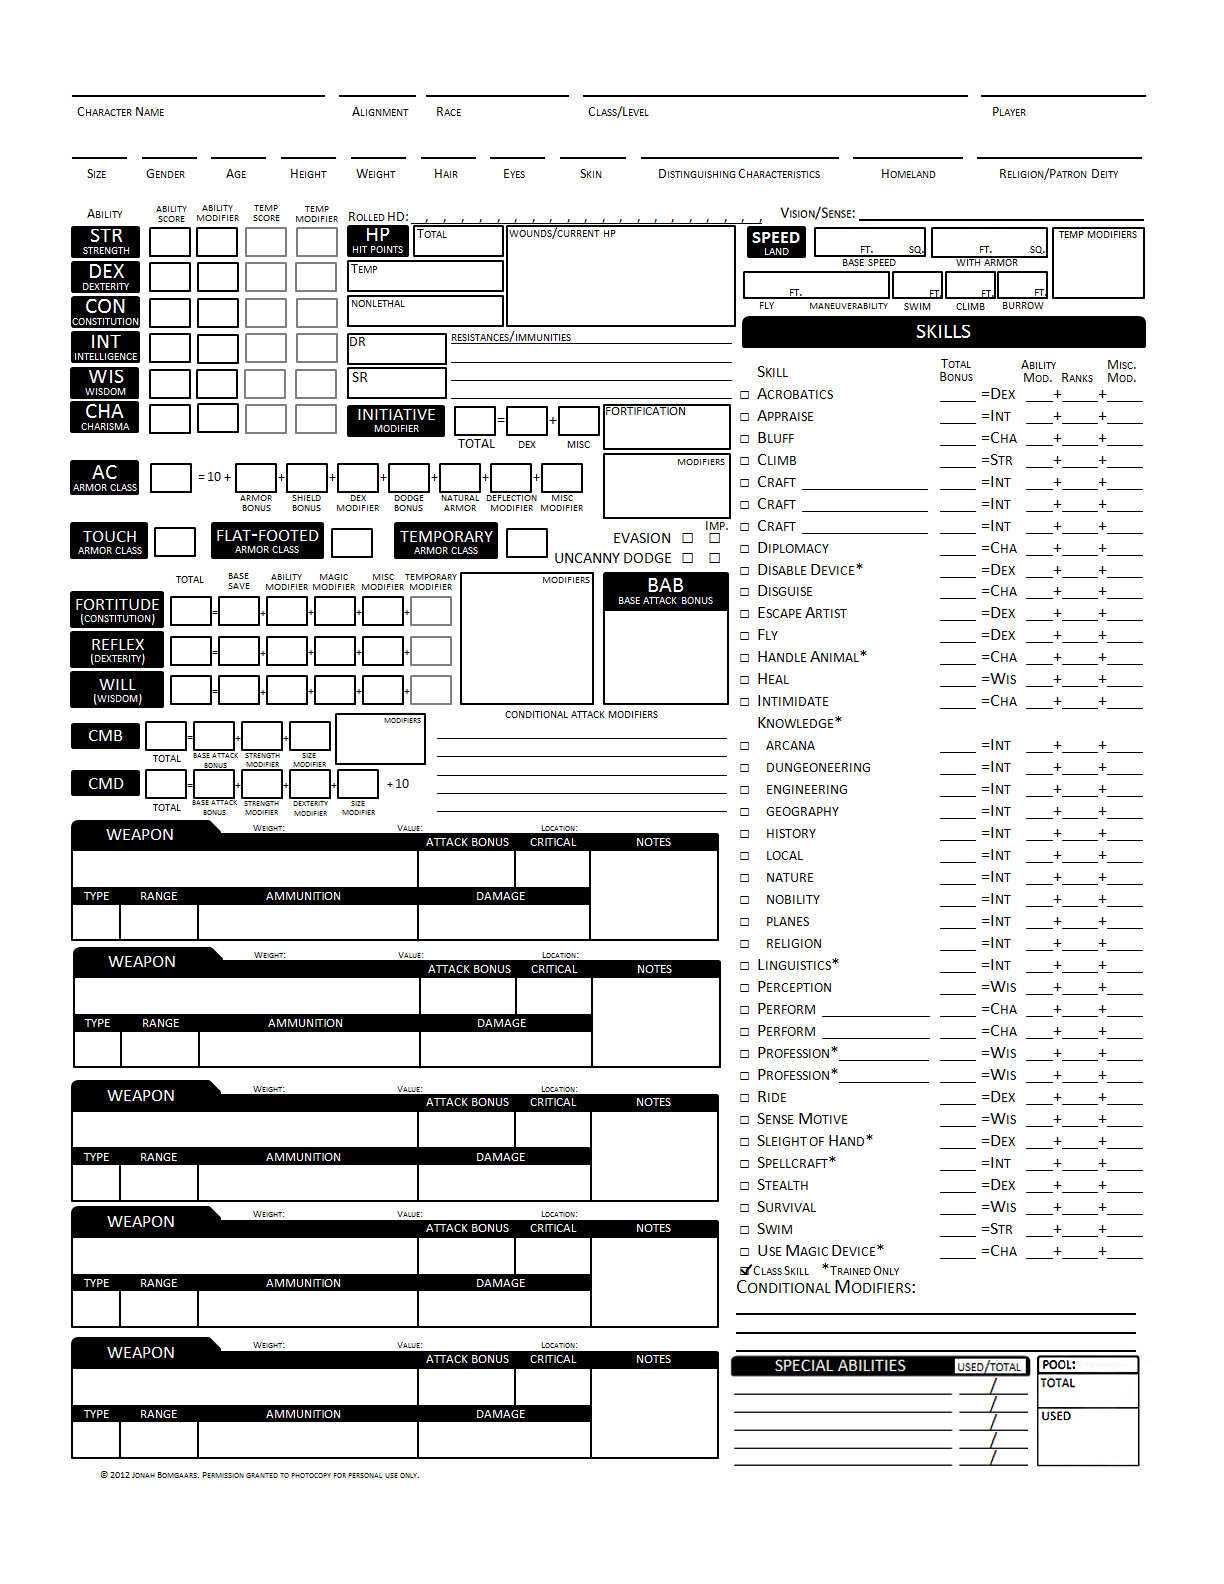 photo regarding Pathfinder Character Sheet Printable referred to as d20 Despot: Greater Identity Sheet v2.0